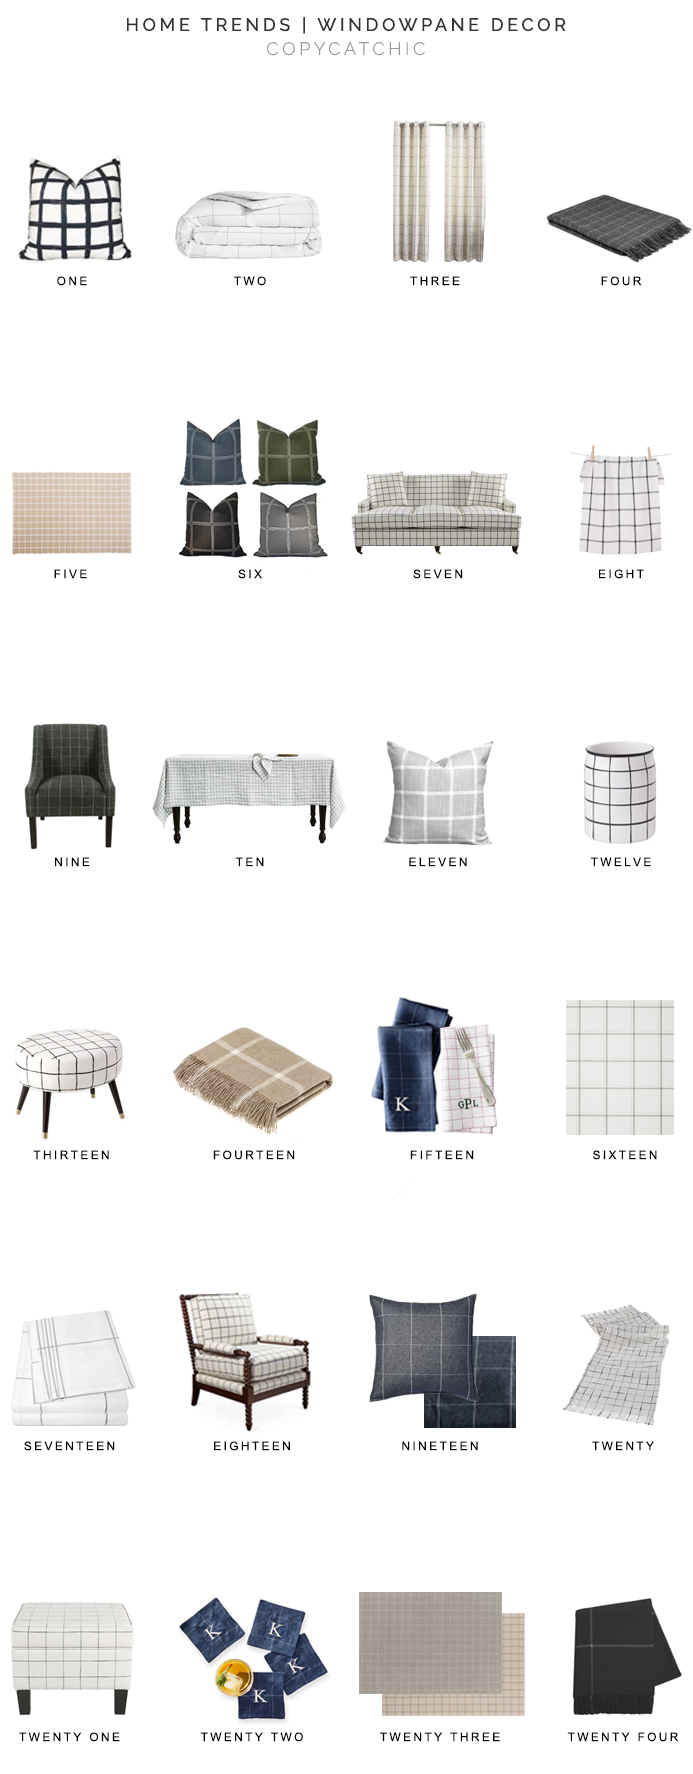 windowpane check decor for less, windowpane plaid decor, windowpane print decor, copycatchic luxe living for less, budget home decor and design, daily finds, home trends, sales, budget travel and room redos